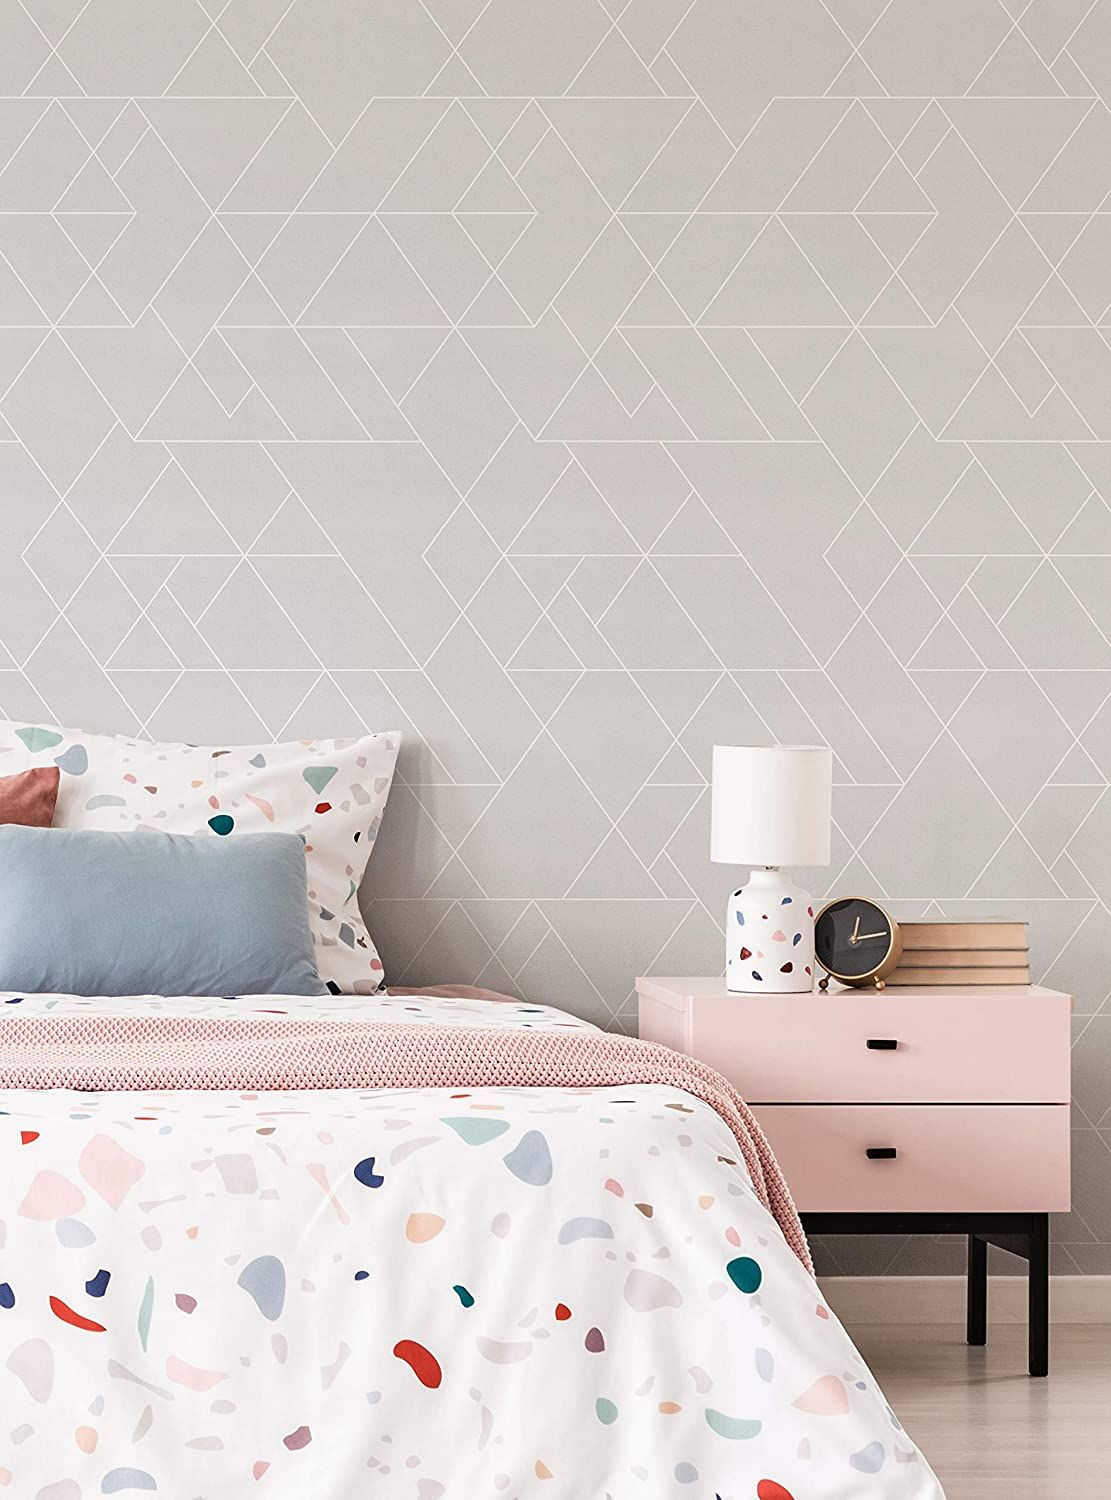 Triangle Geometric Art Deco Lines Wallpaper Peel And Stick By Simple Shapes Single Sheet 2ft X 4 Wallpaper Panels Lines Wallpaper Peel And Stick Wallpaper